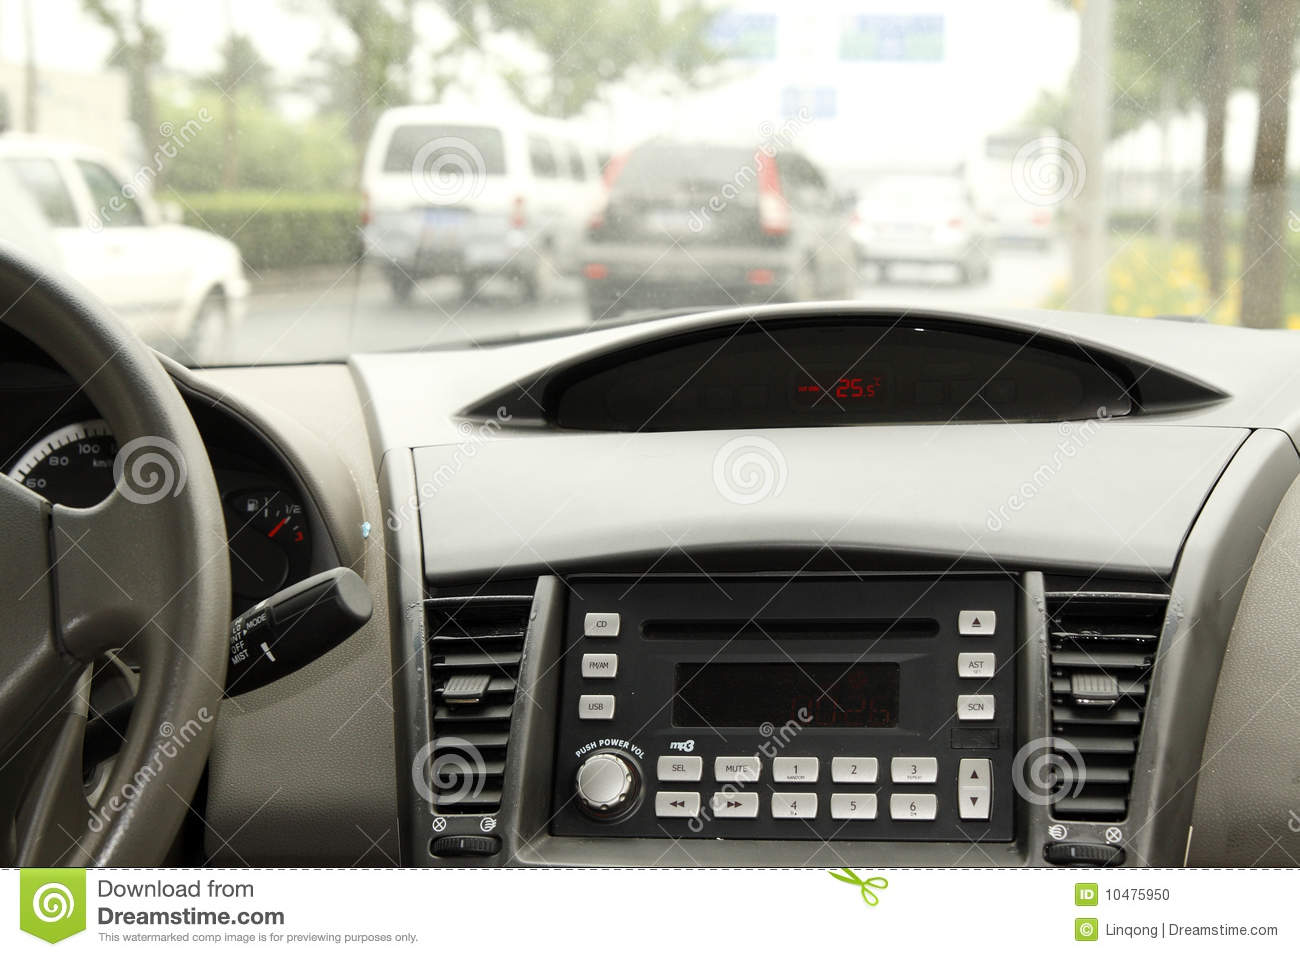 Driving in the car console.